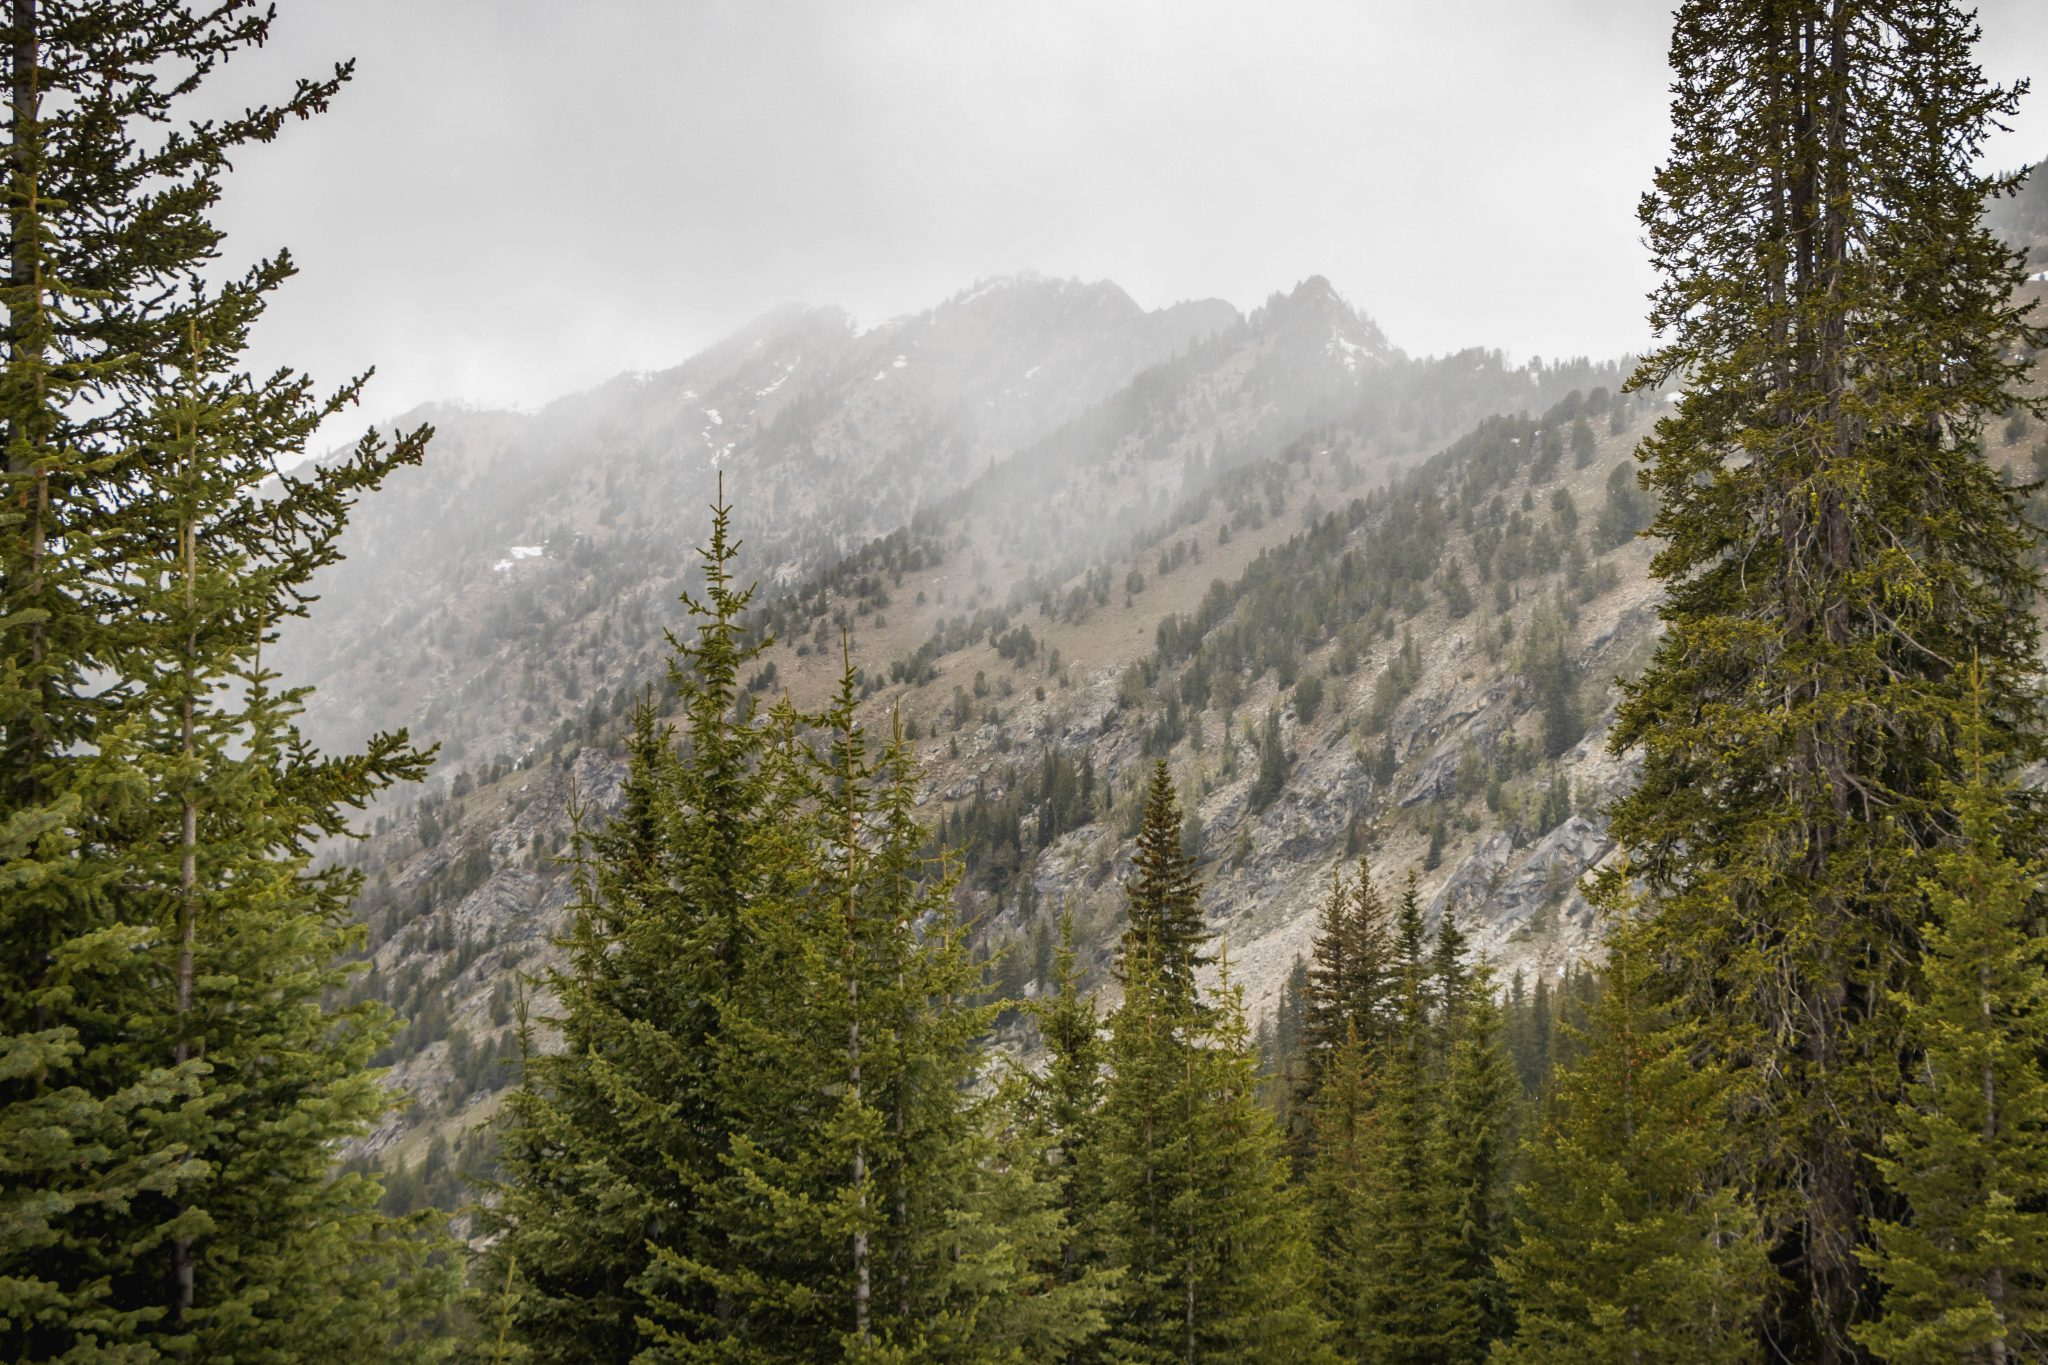 Old Maid Mountain in the mist